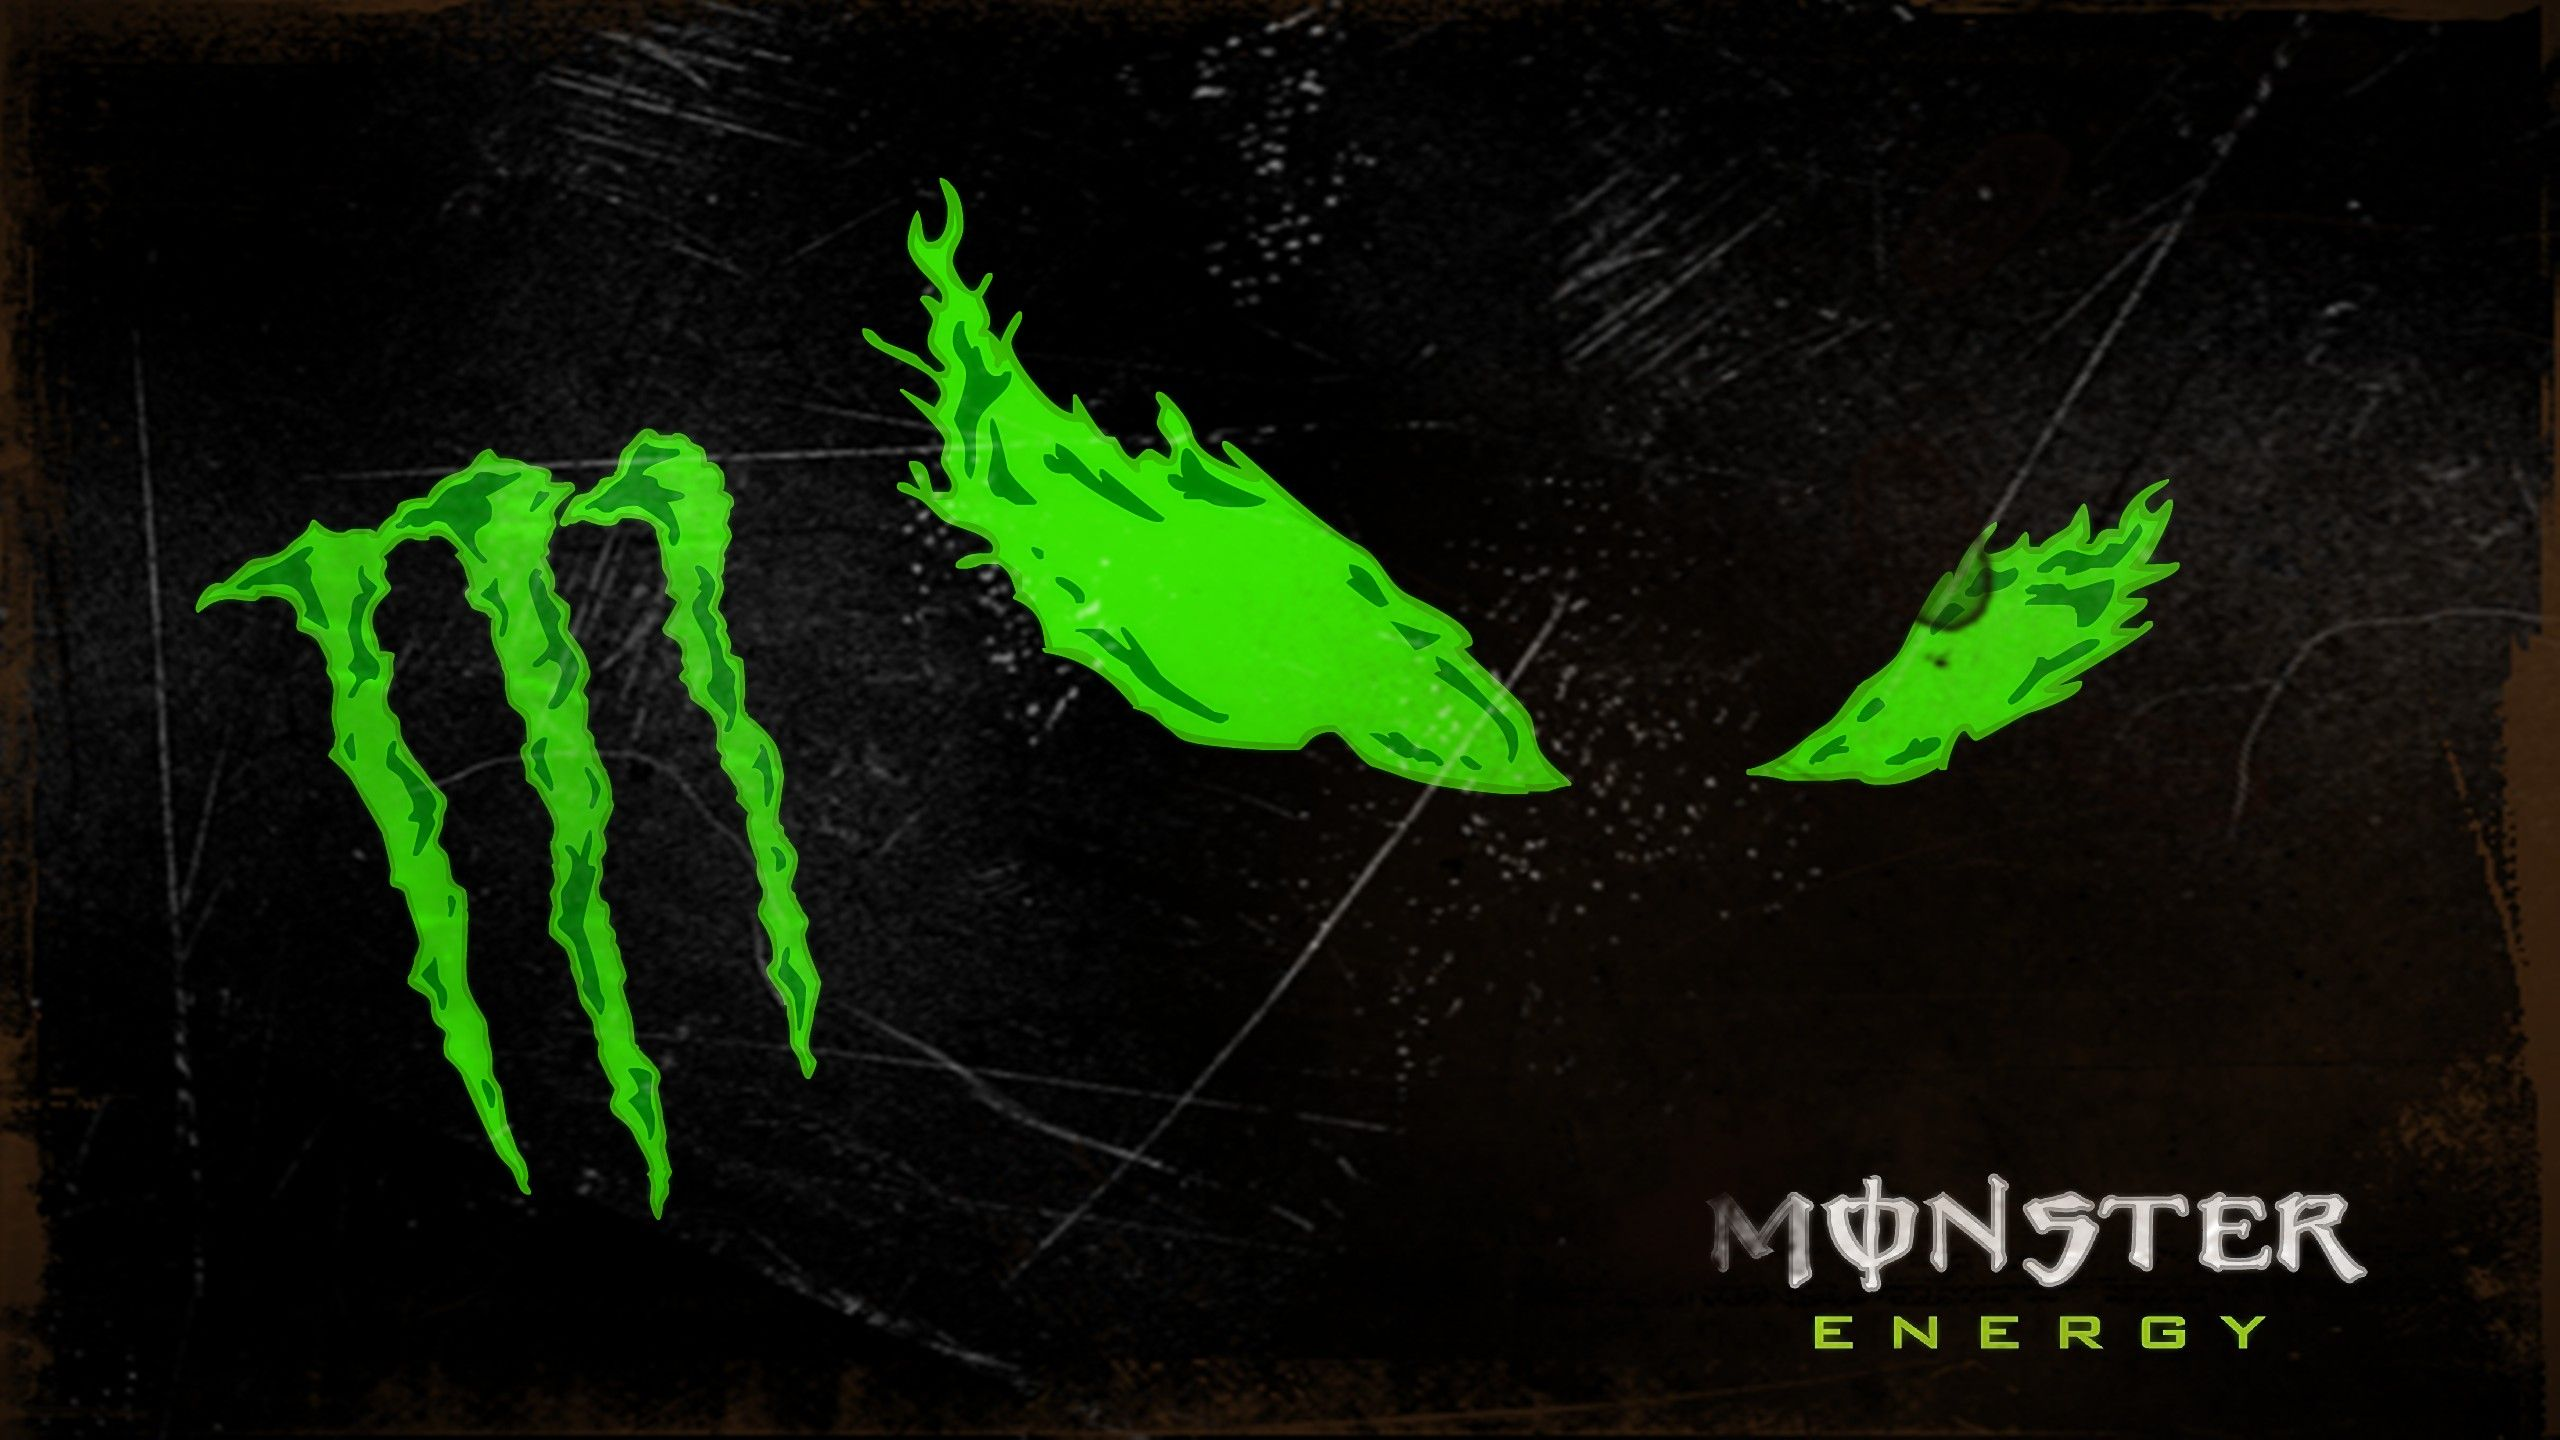 2560x1440 Monster wallpaper ·① Download free stunning full HD backgrounds for ...